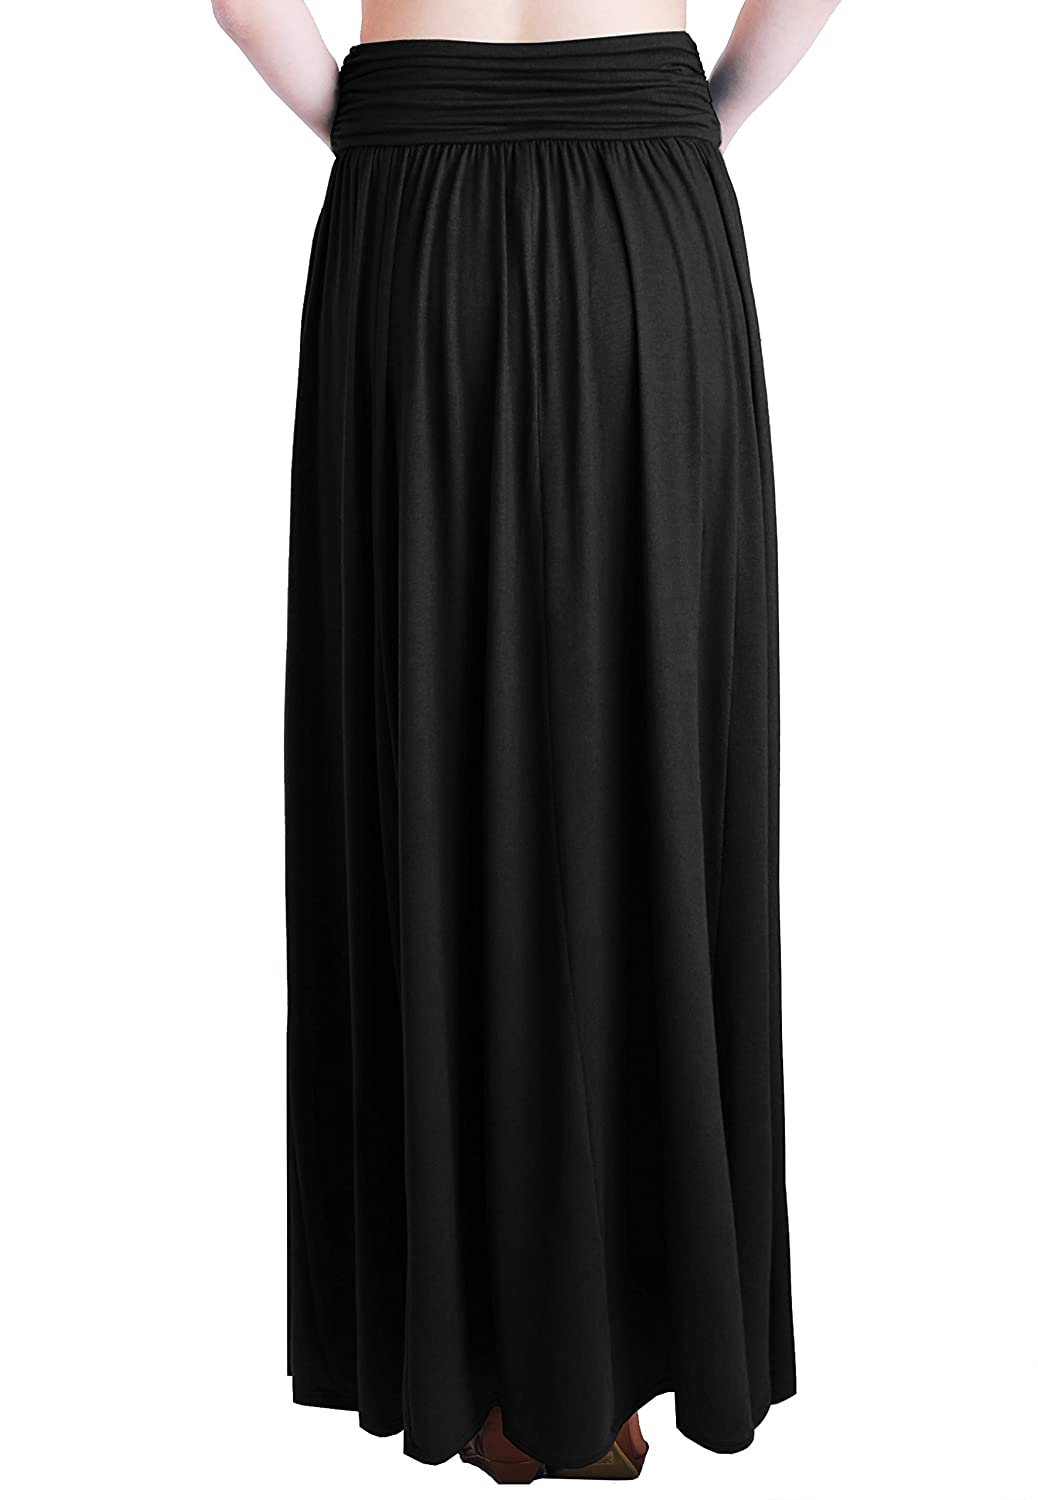 ccf625045e2735 TRENDY UNITED Women's Rayon Spandex High Waist Shirring Maxi Skirt with  Pockets at Amazon Women's Clothing store: